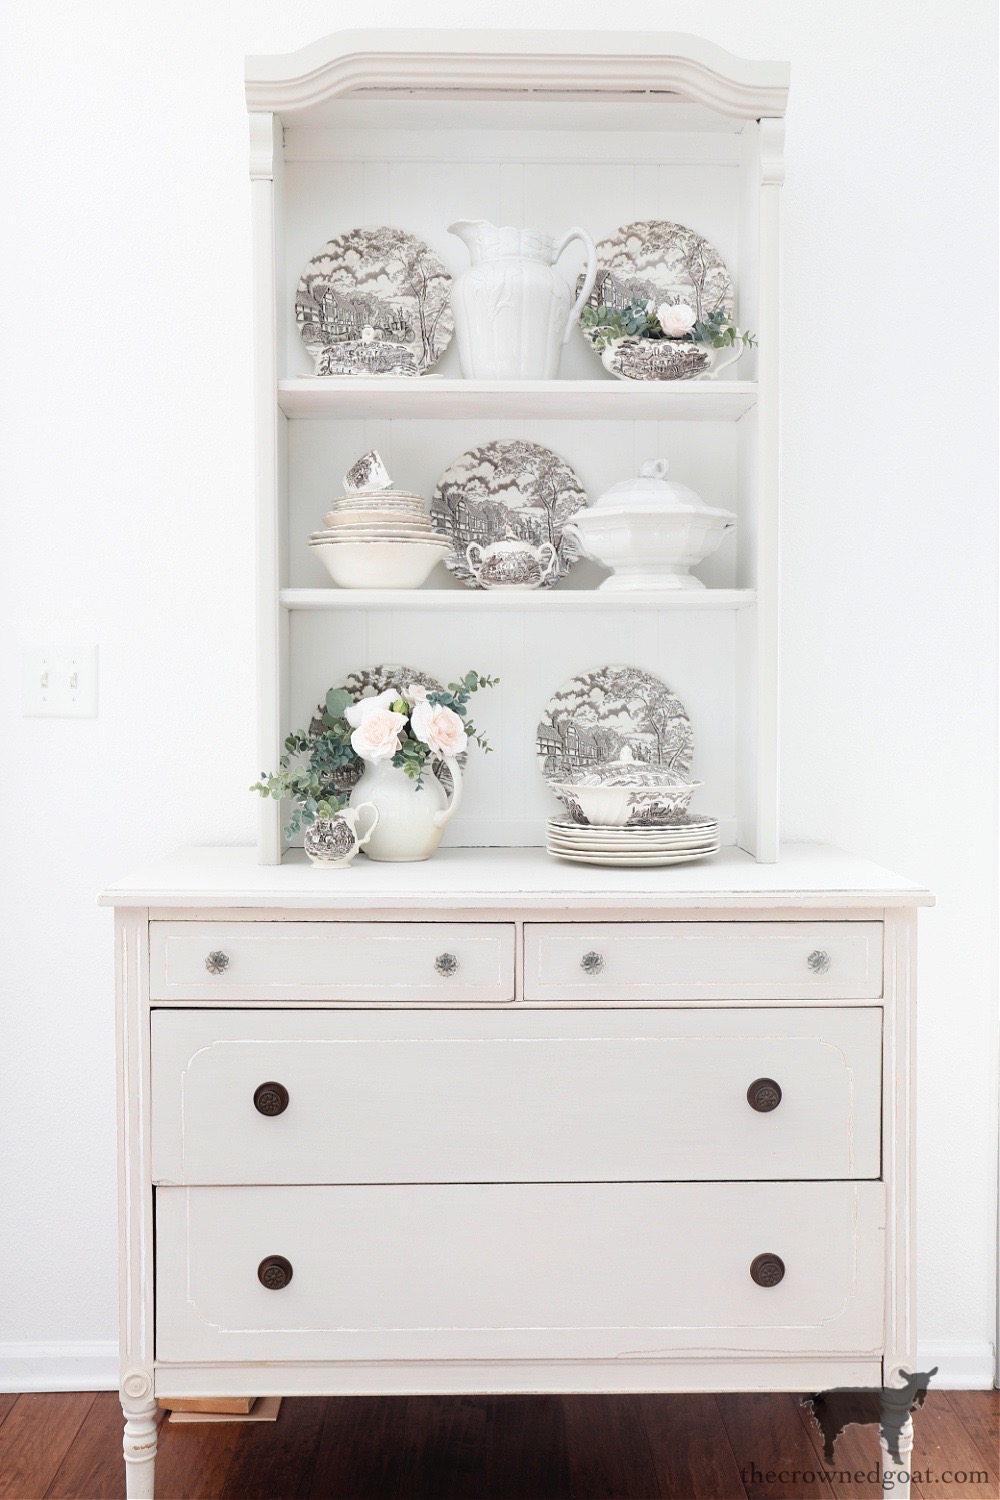 Marrying a Farmhouse Hutch and Dresser